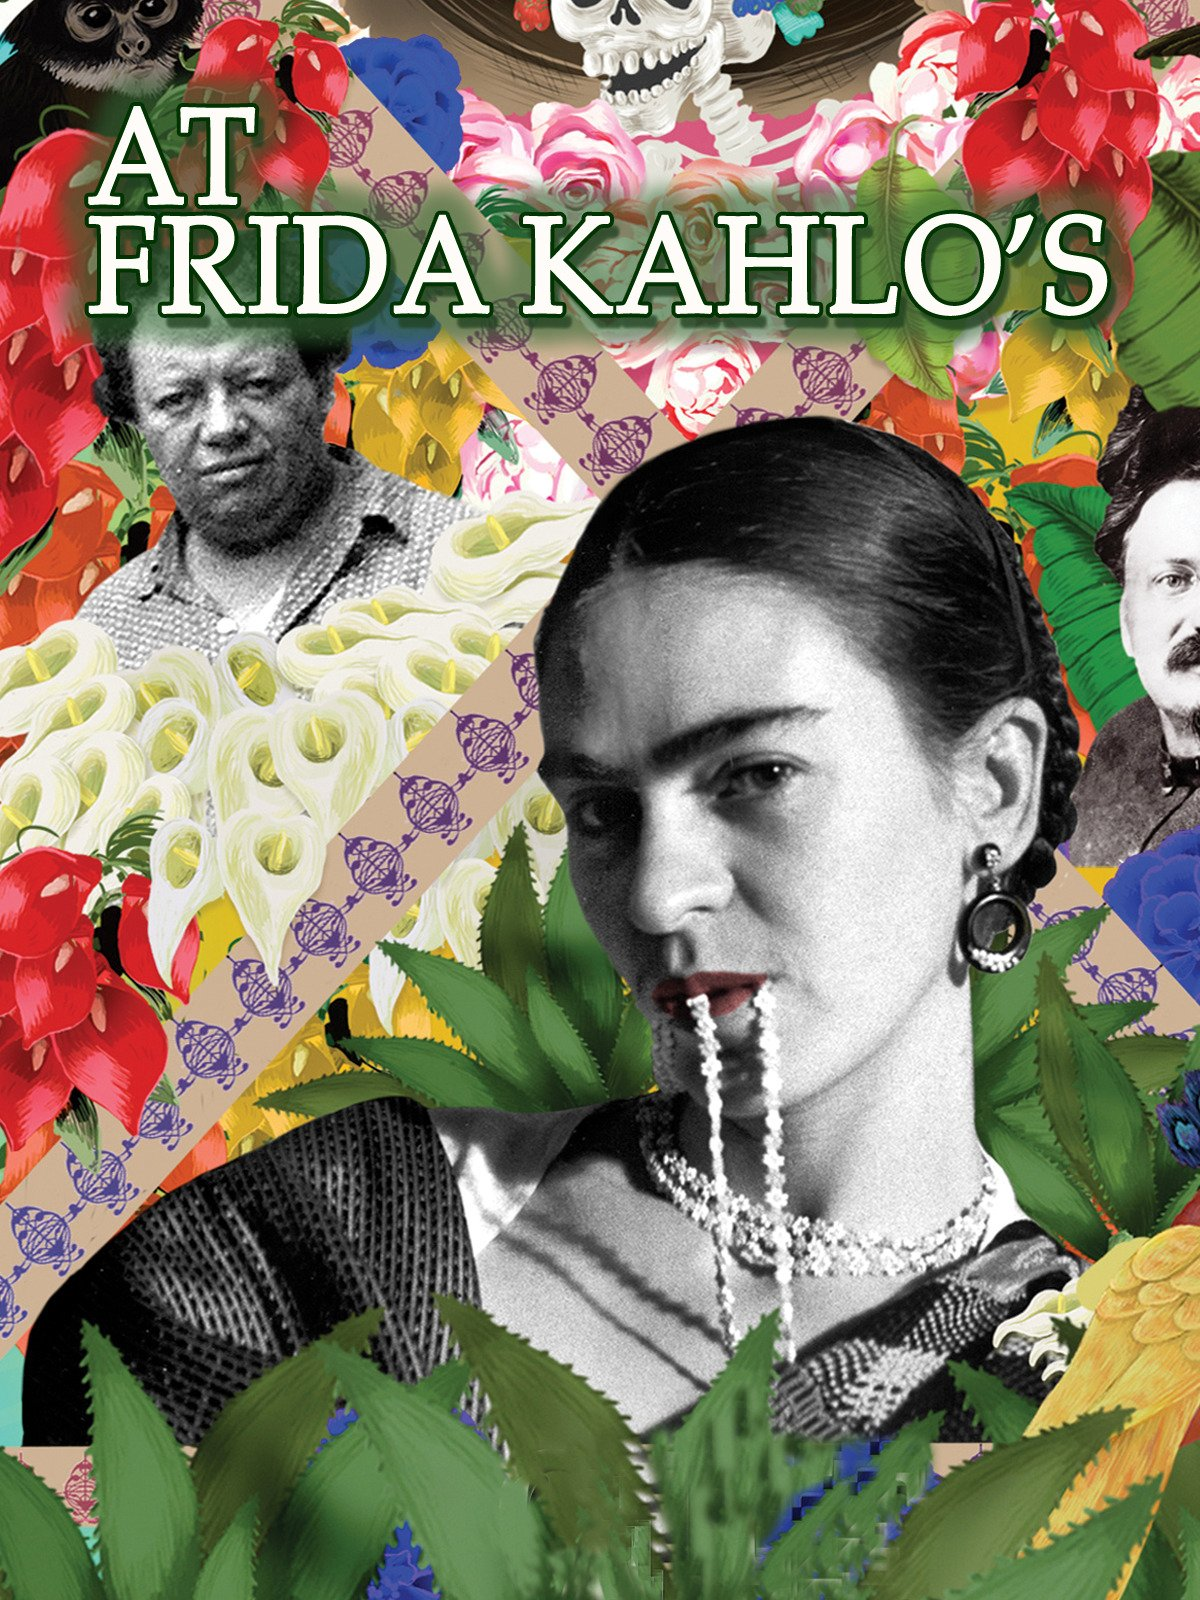 At Frida Kahlo's